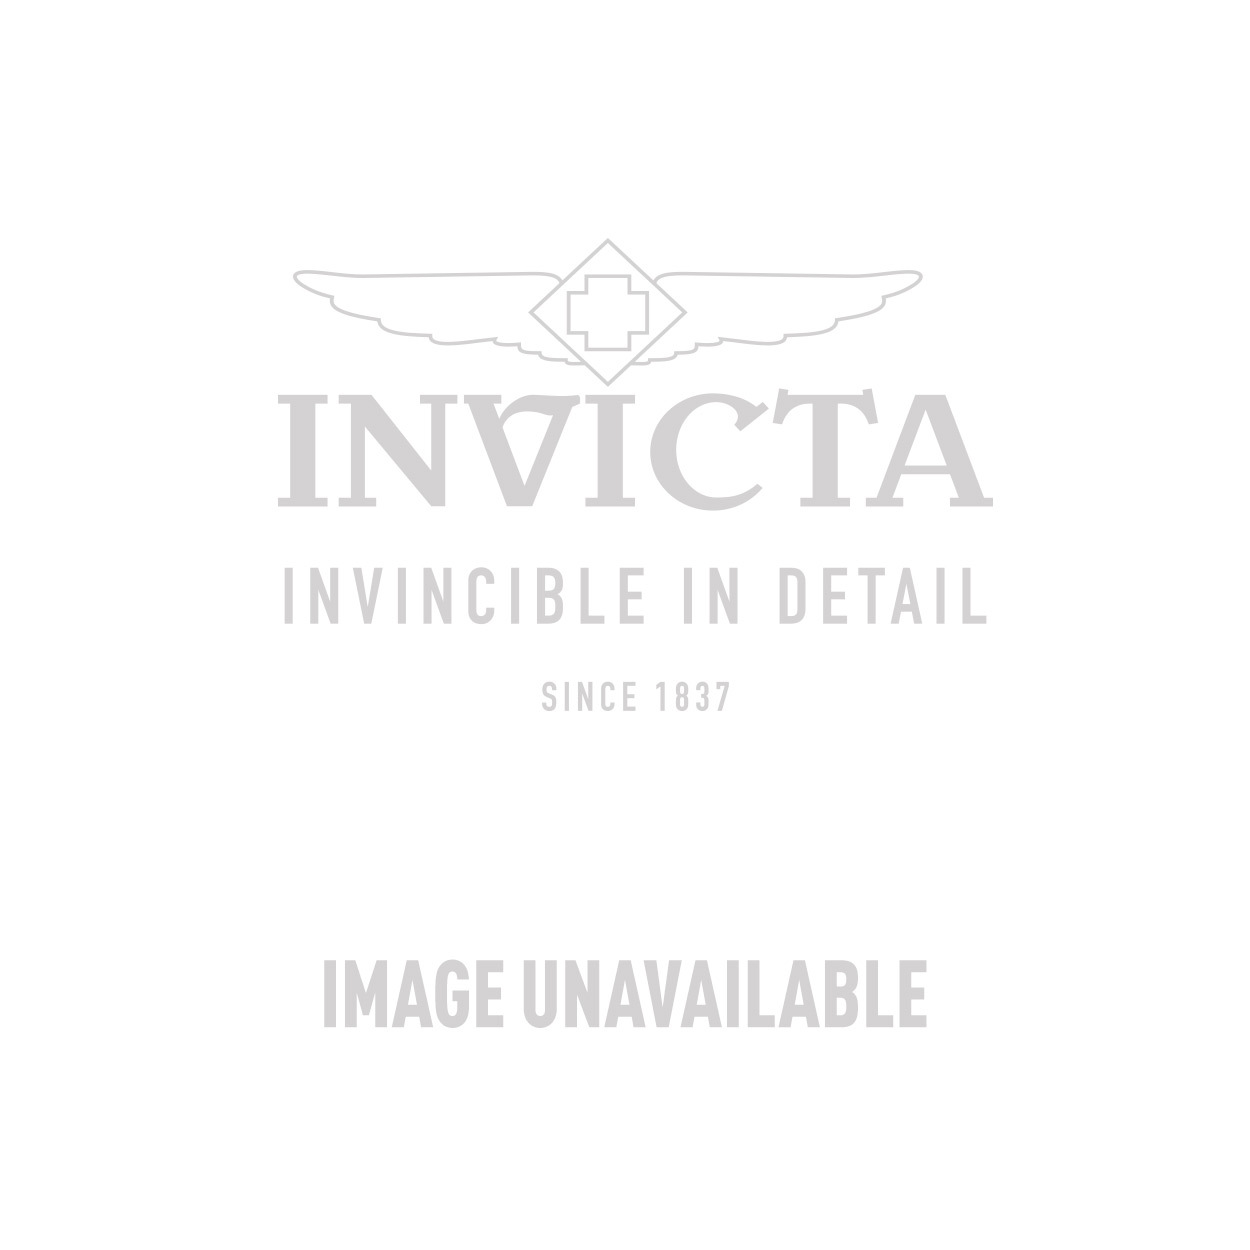 Invicta S1 Rally Quartz Watch - Gold case with Gold tone  band - Model 5780